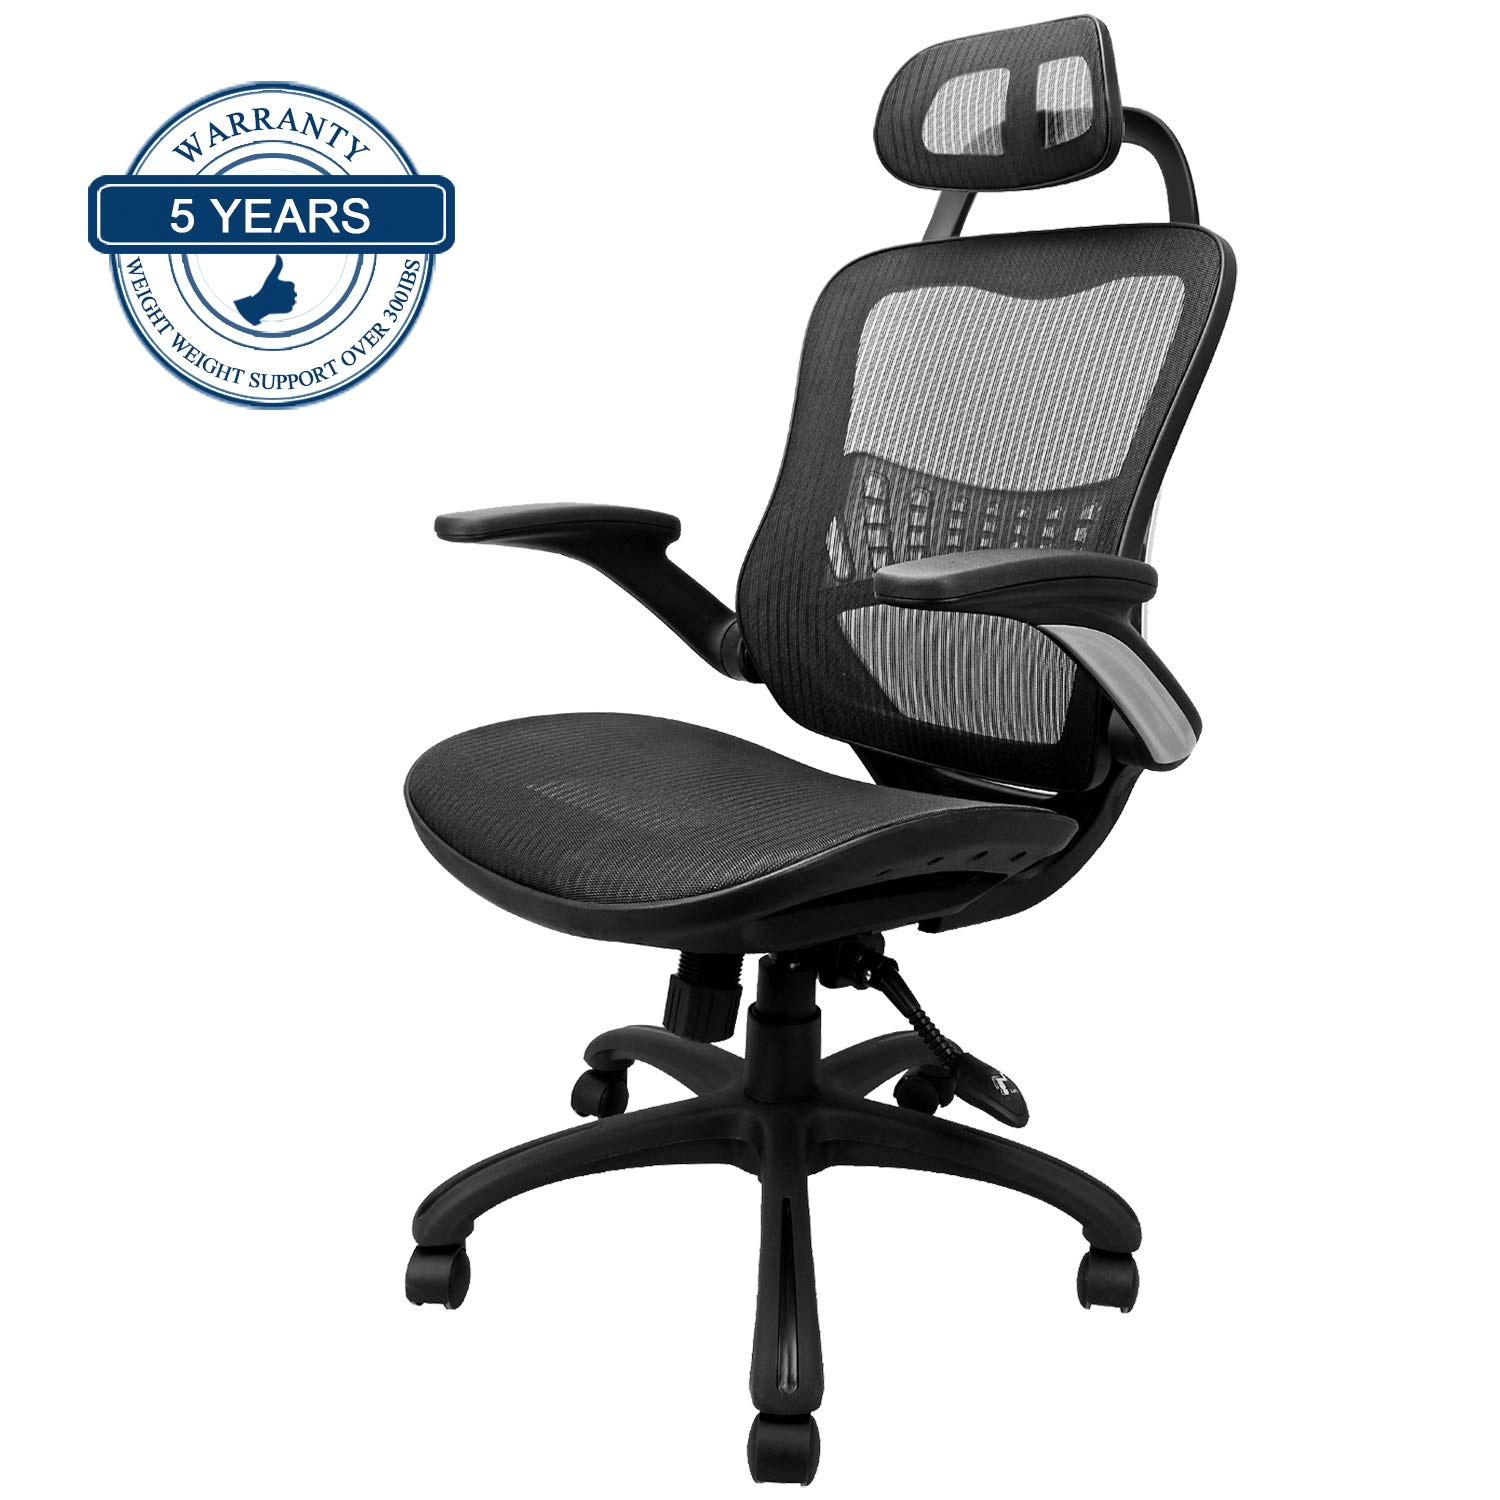 Komene Ergonomic Chairs for Office &Home: Passed BIFMA/SGS Weight Support Over 300Ibs,The Most Comfortable Mesh Cushion&High Back-Adjustable Headrest Backrest,Flip-up Armrests,360-Degree Swivel Chairs